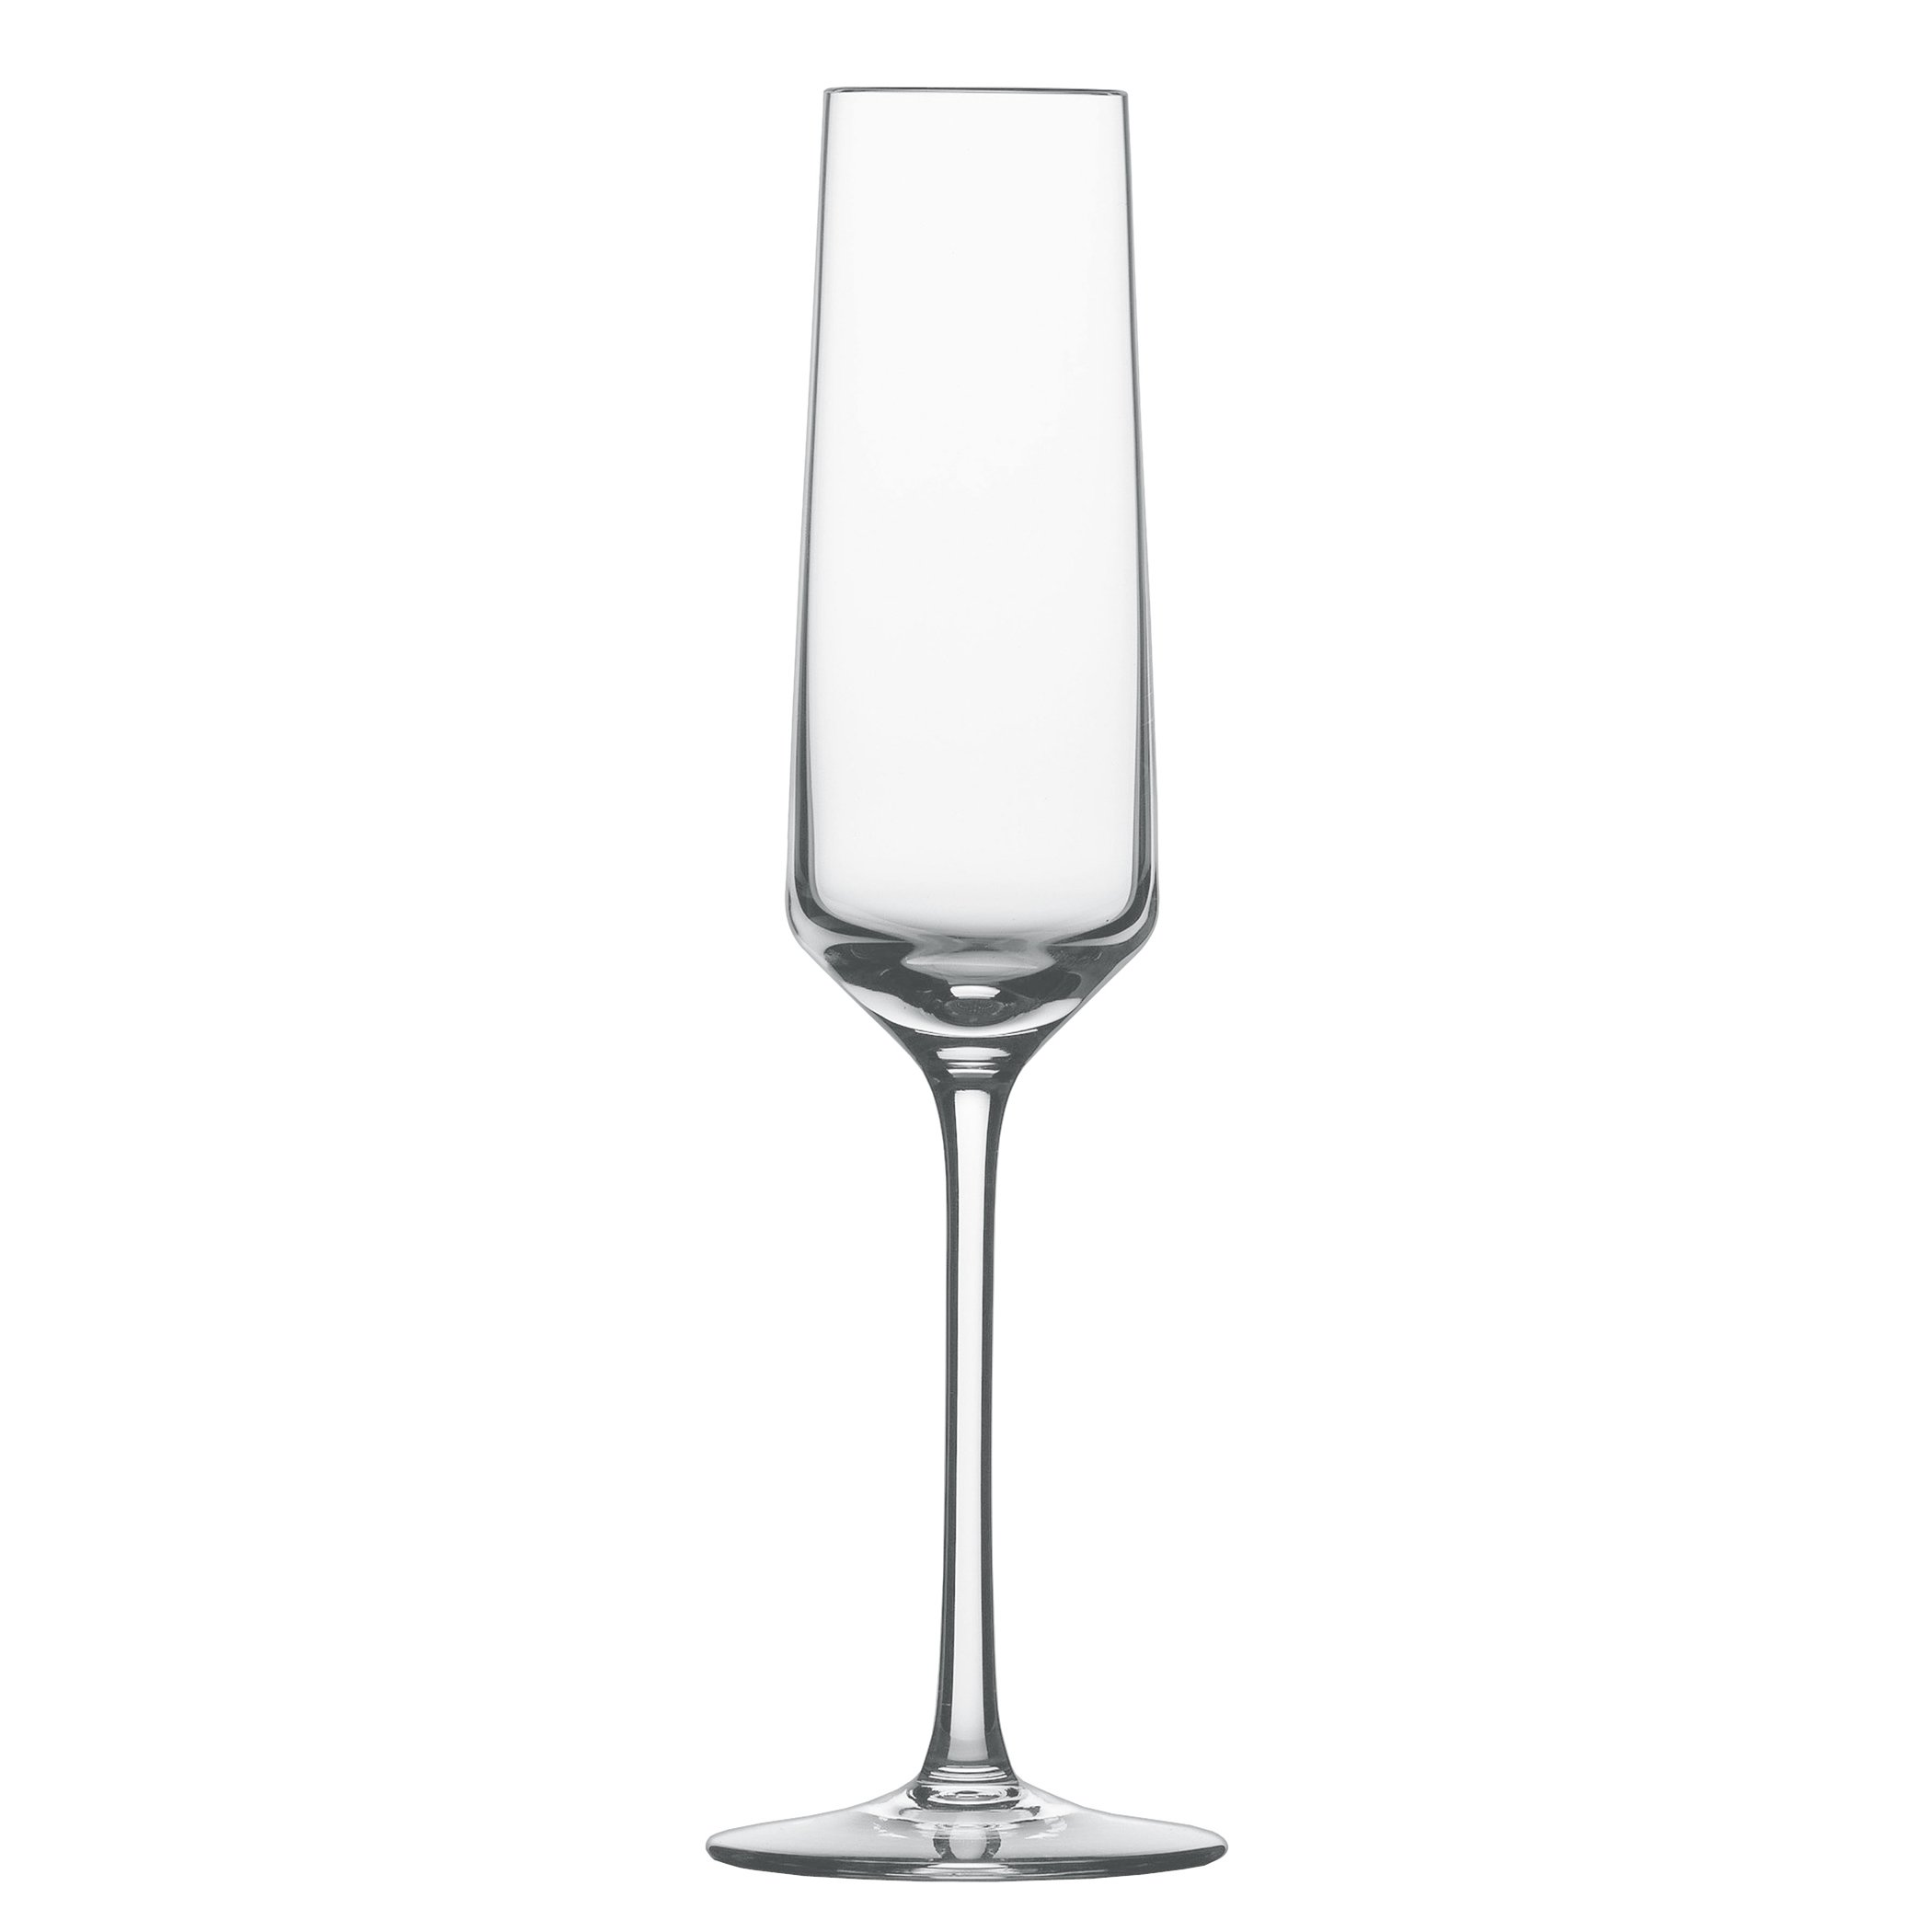 Schott Zwiesel Tritan Crystal Glass Pure Stemware Collection Champagne Flute with Effervescence Points, 7.1-Ounce, Set of 4